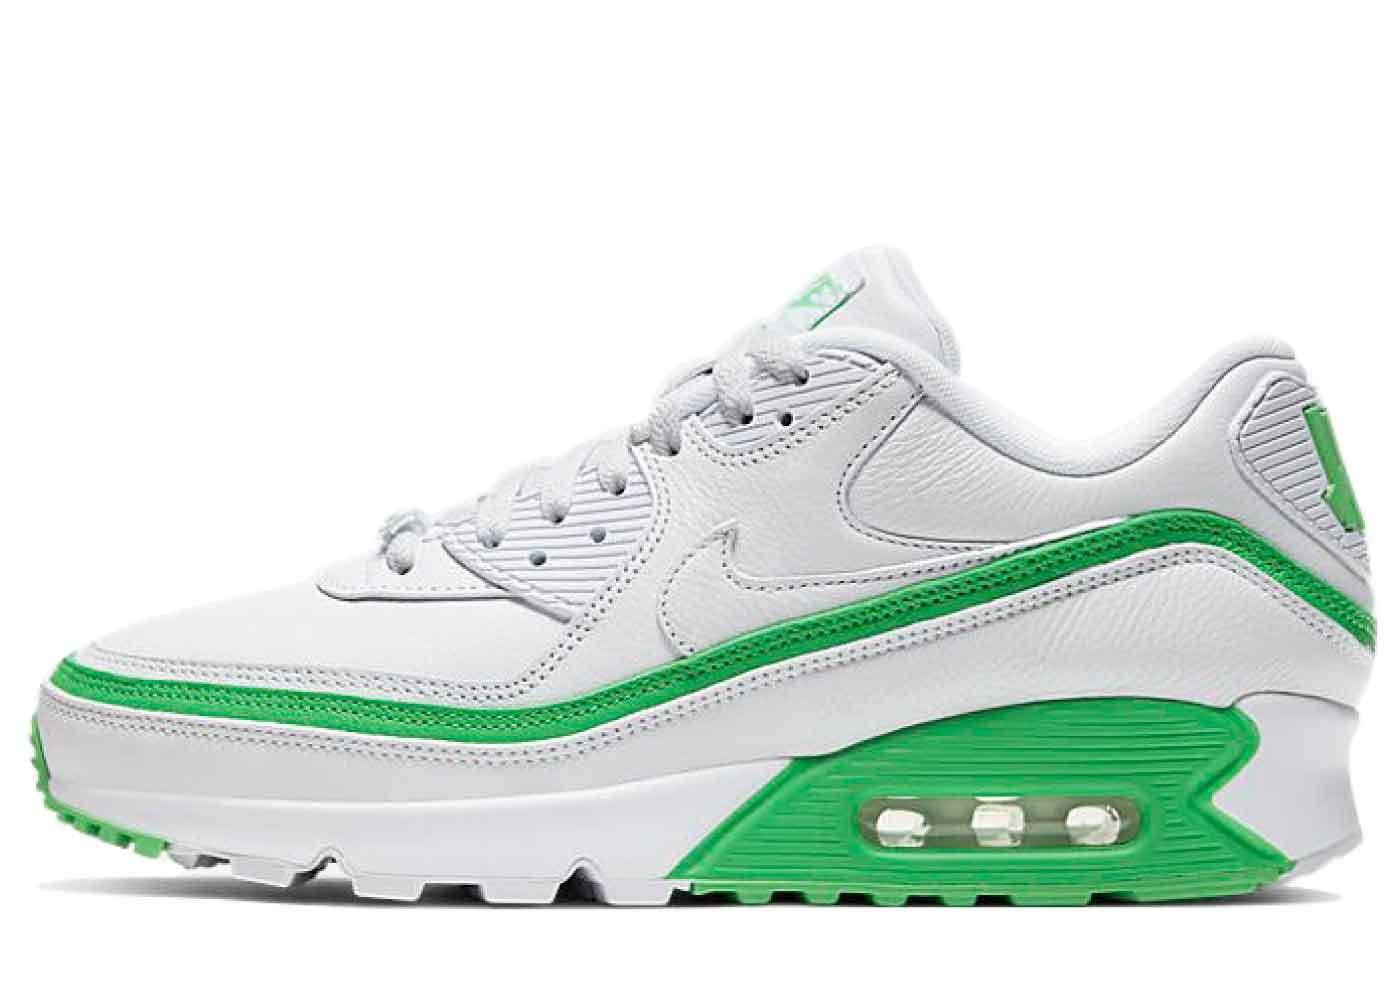 Nike Air Max 90 Undefeated White Green Sparkの写真